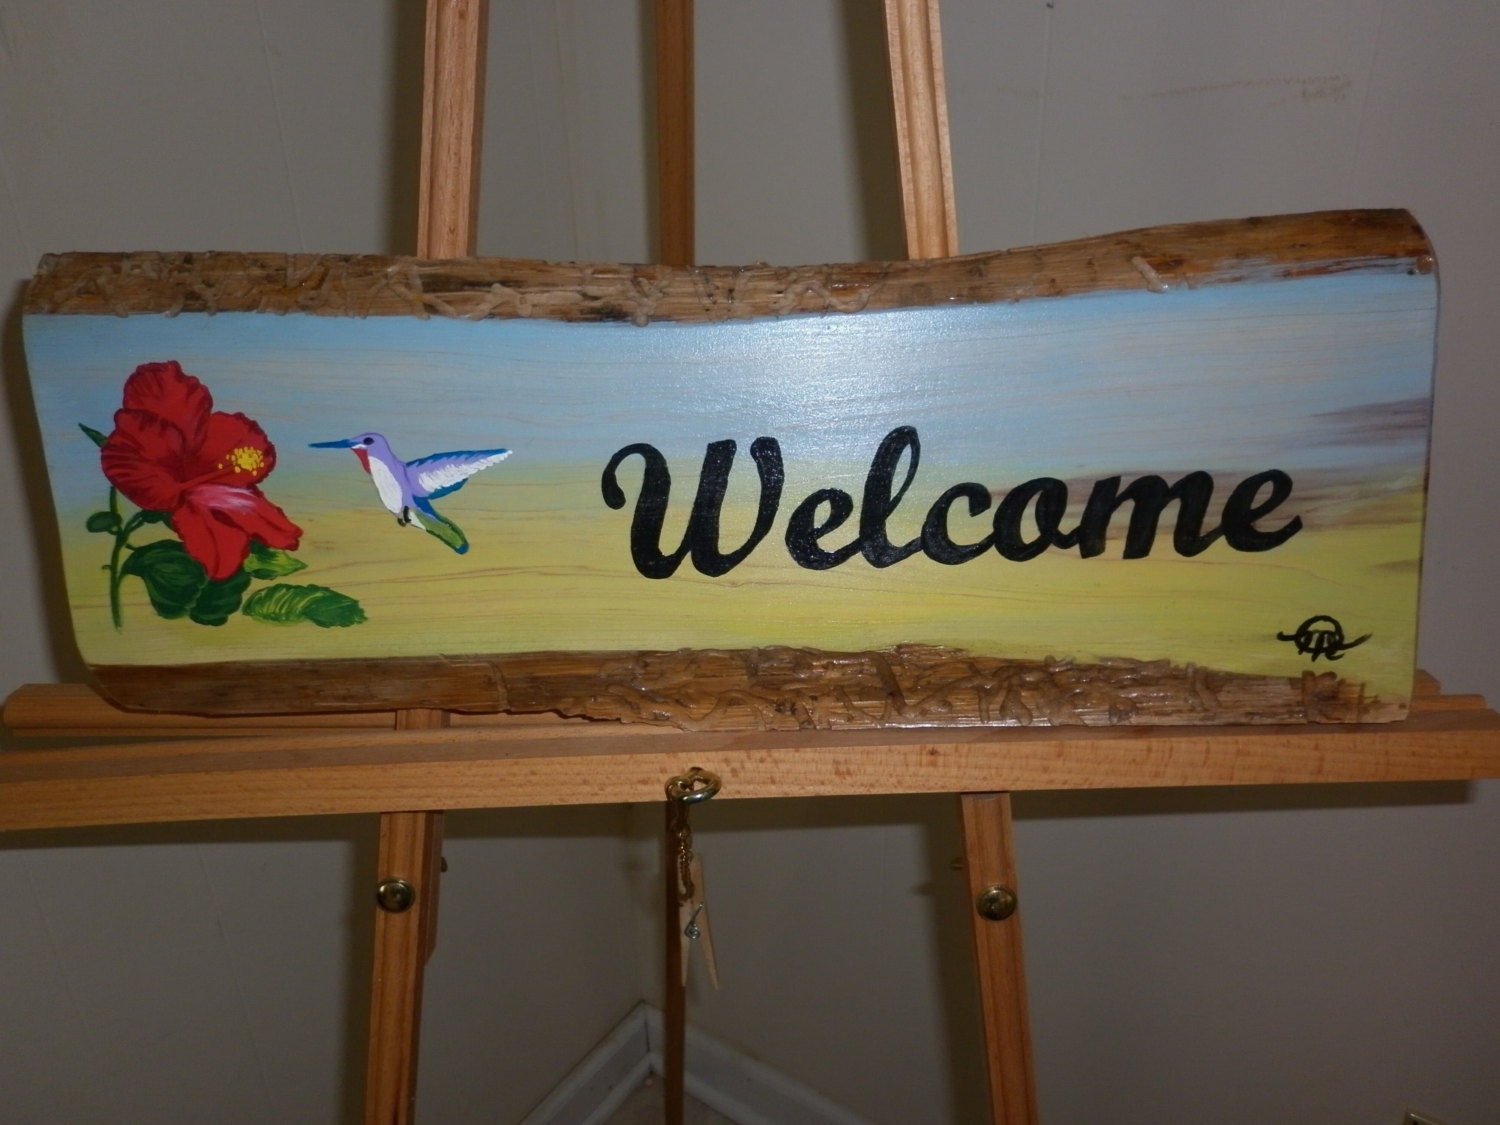 printable library welcome sign - Google Search | Wake up ...